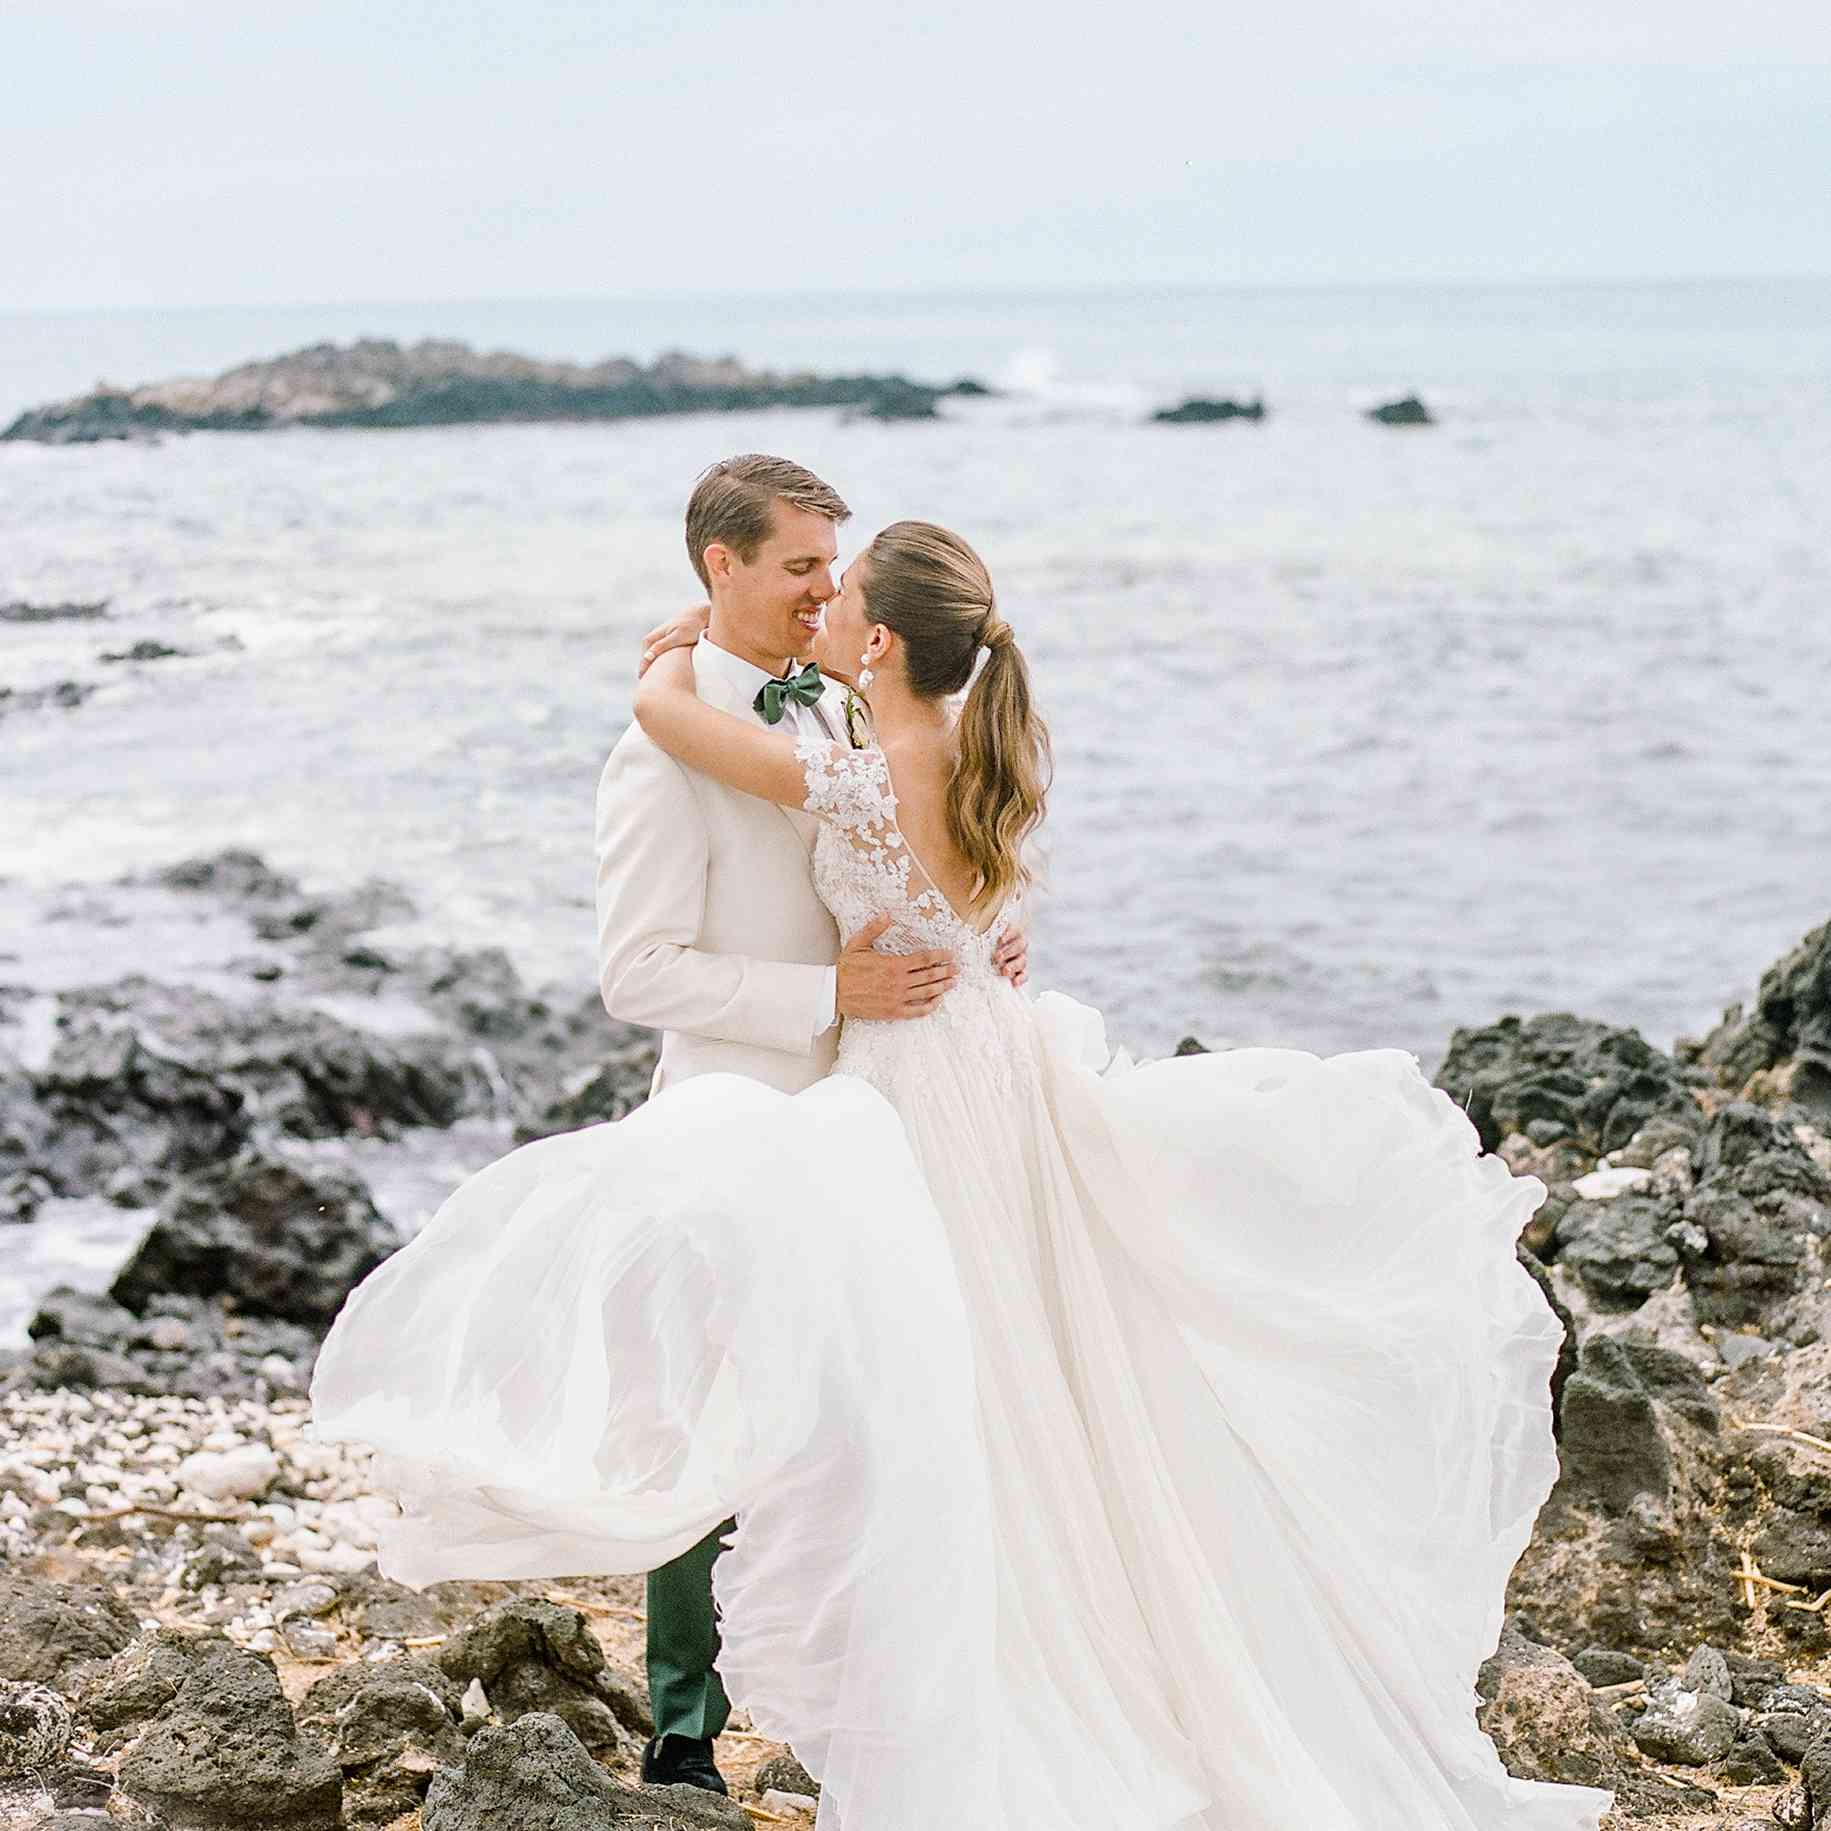 bride and groom standing on rocky beach